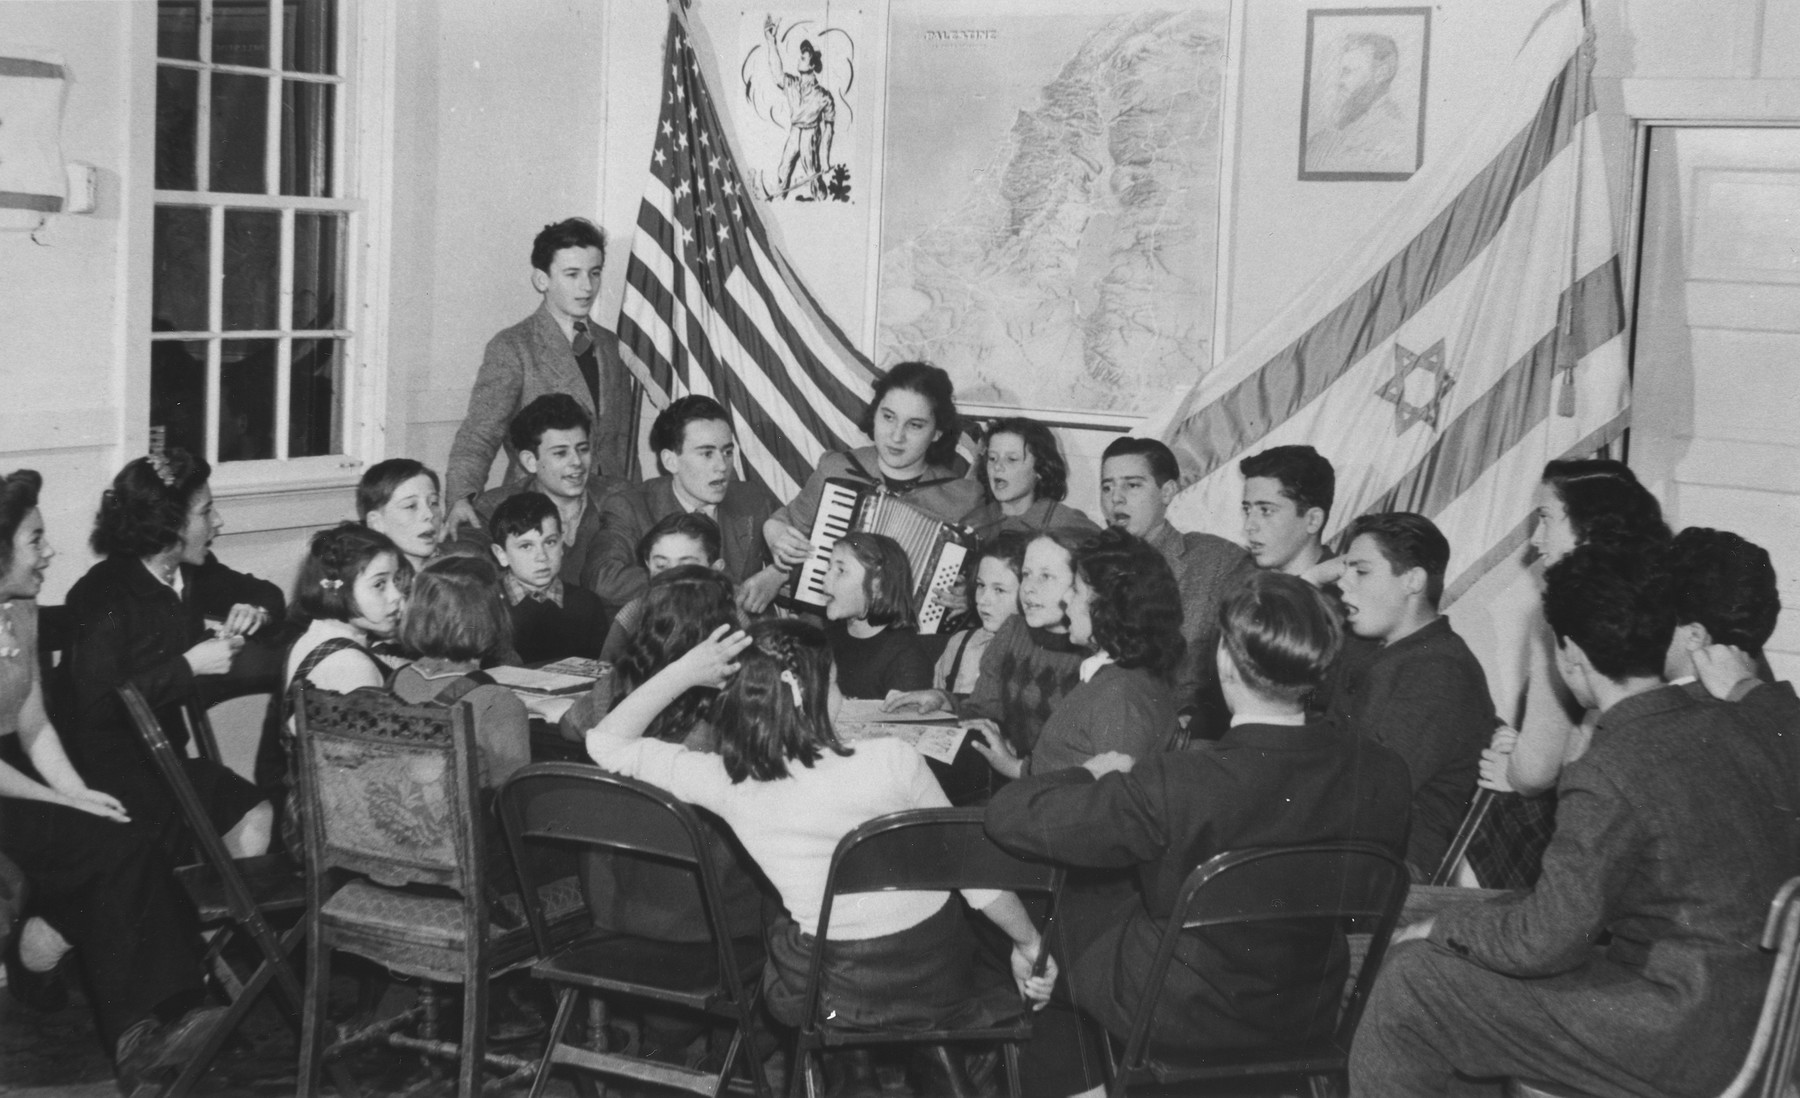 Jewish youth living at the Fort Ontario refugee shelter sing songs accompanied by an accordionist.   Those pictured include Elfi Strauber, Liesel Bader, Ruth Hendel, Walter Arnstein, Ernest Spitzer, Leo Levic, Wilko Kremer, David Hendel, Henny Notowitz, Adam Munz, Fortunee Levic, Paul Bokros, Ivo Lederer, Paul Arnstein, Neli Bokros, Herman Kremer, and Joseph Bernard Hirt, standing on the far left next to the American flag.  The pen and ink drawing on the wall was drawn by Adam Munz.